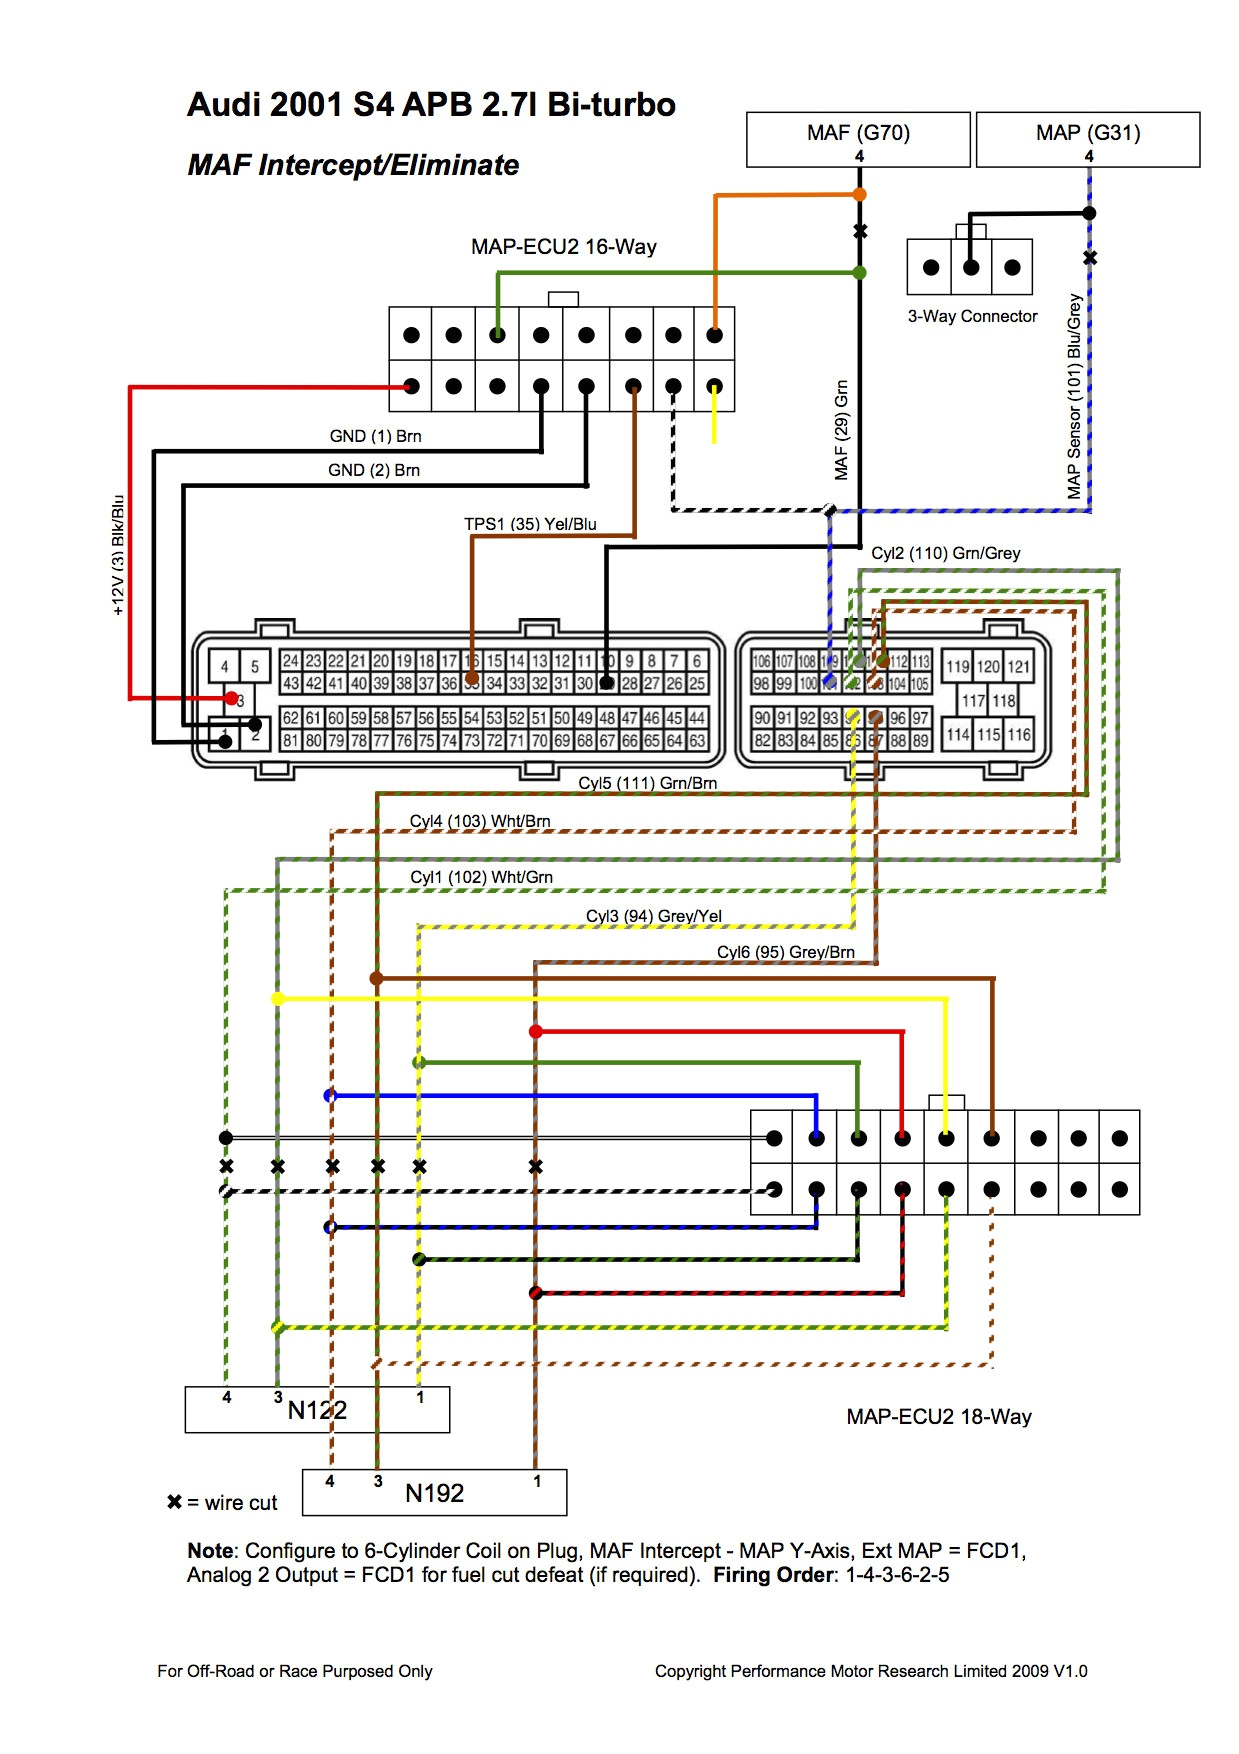 2003 toyota Sequoia Radio Wiring Diagram Rs 5893 Tailgate Parts Diagram Also 2007 toyota Tundra